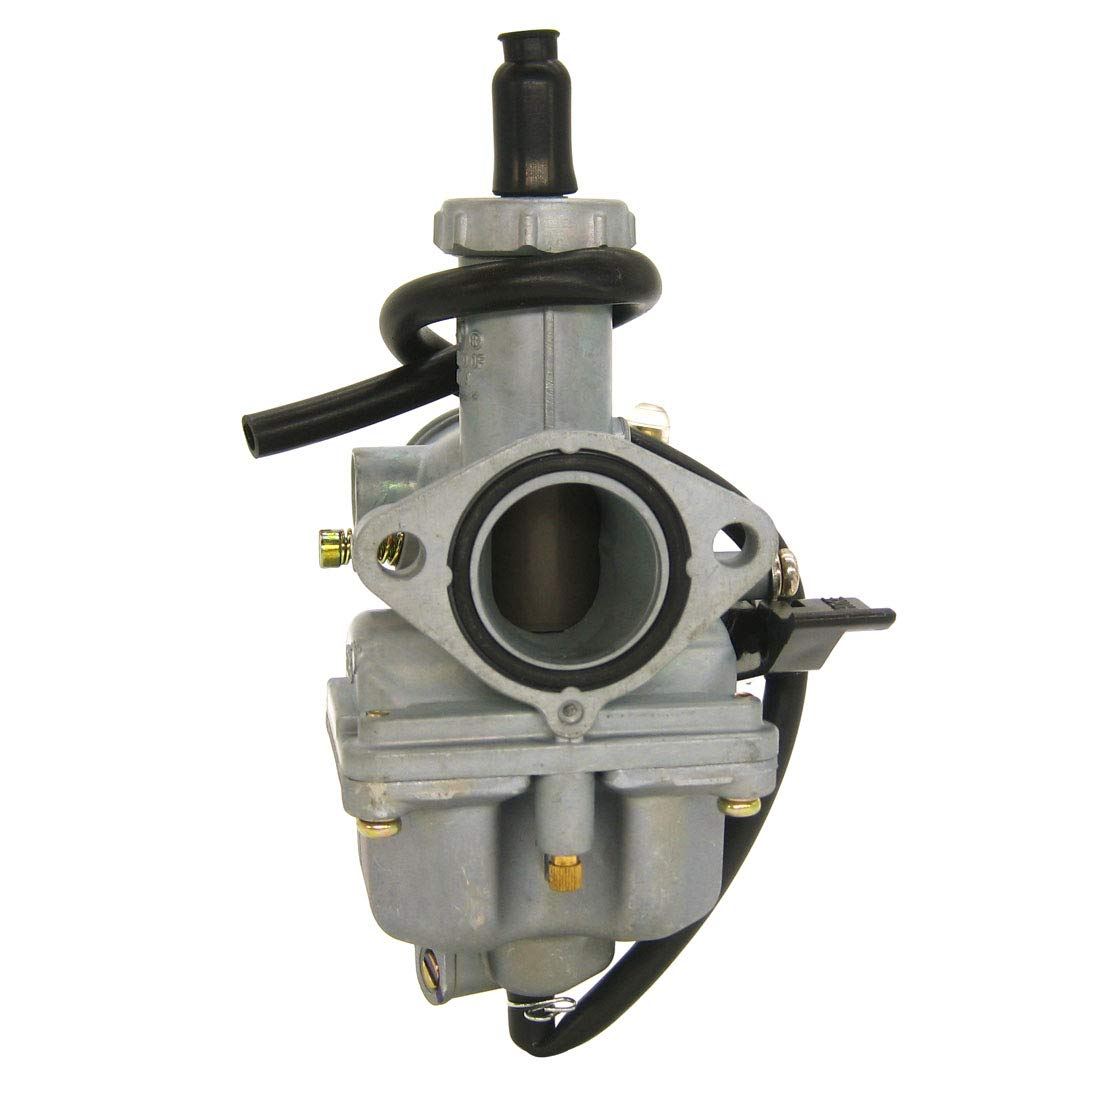 Atoparts New Carburetor with Handlebar Hand Grips Throttle Cable For Honda XR100 XR100R CRF100F